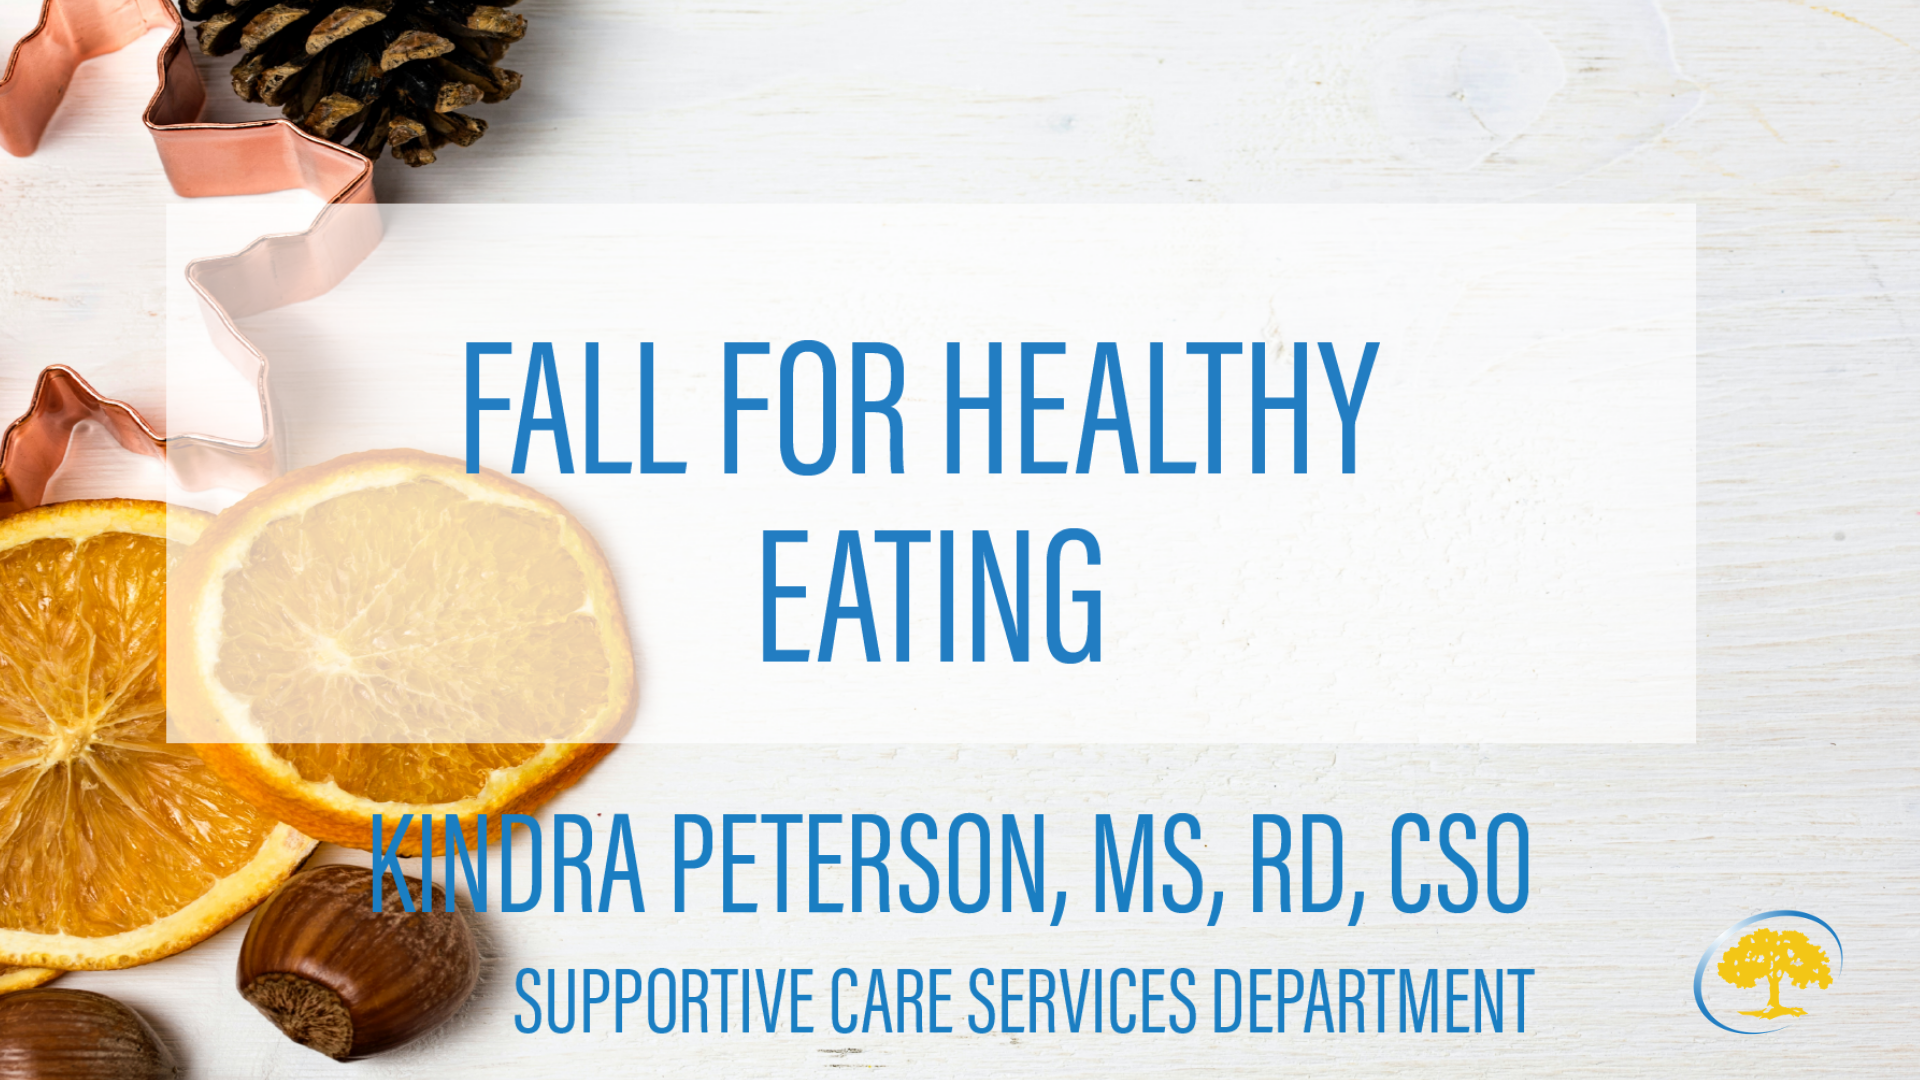 fall fOR HEALTHY EATING